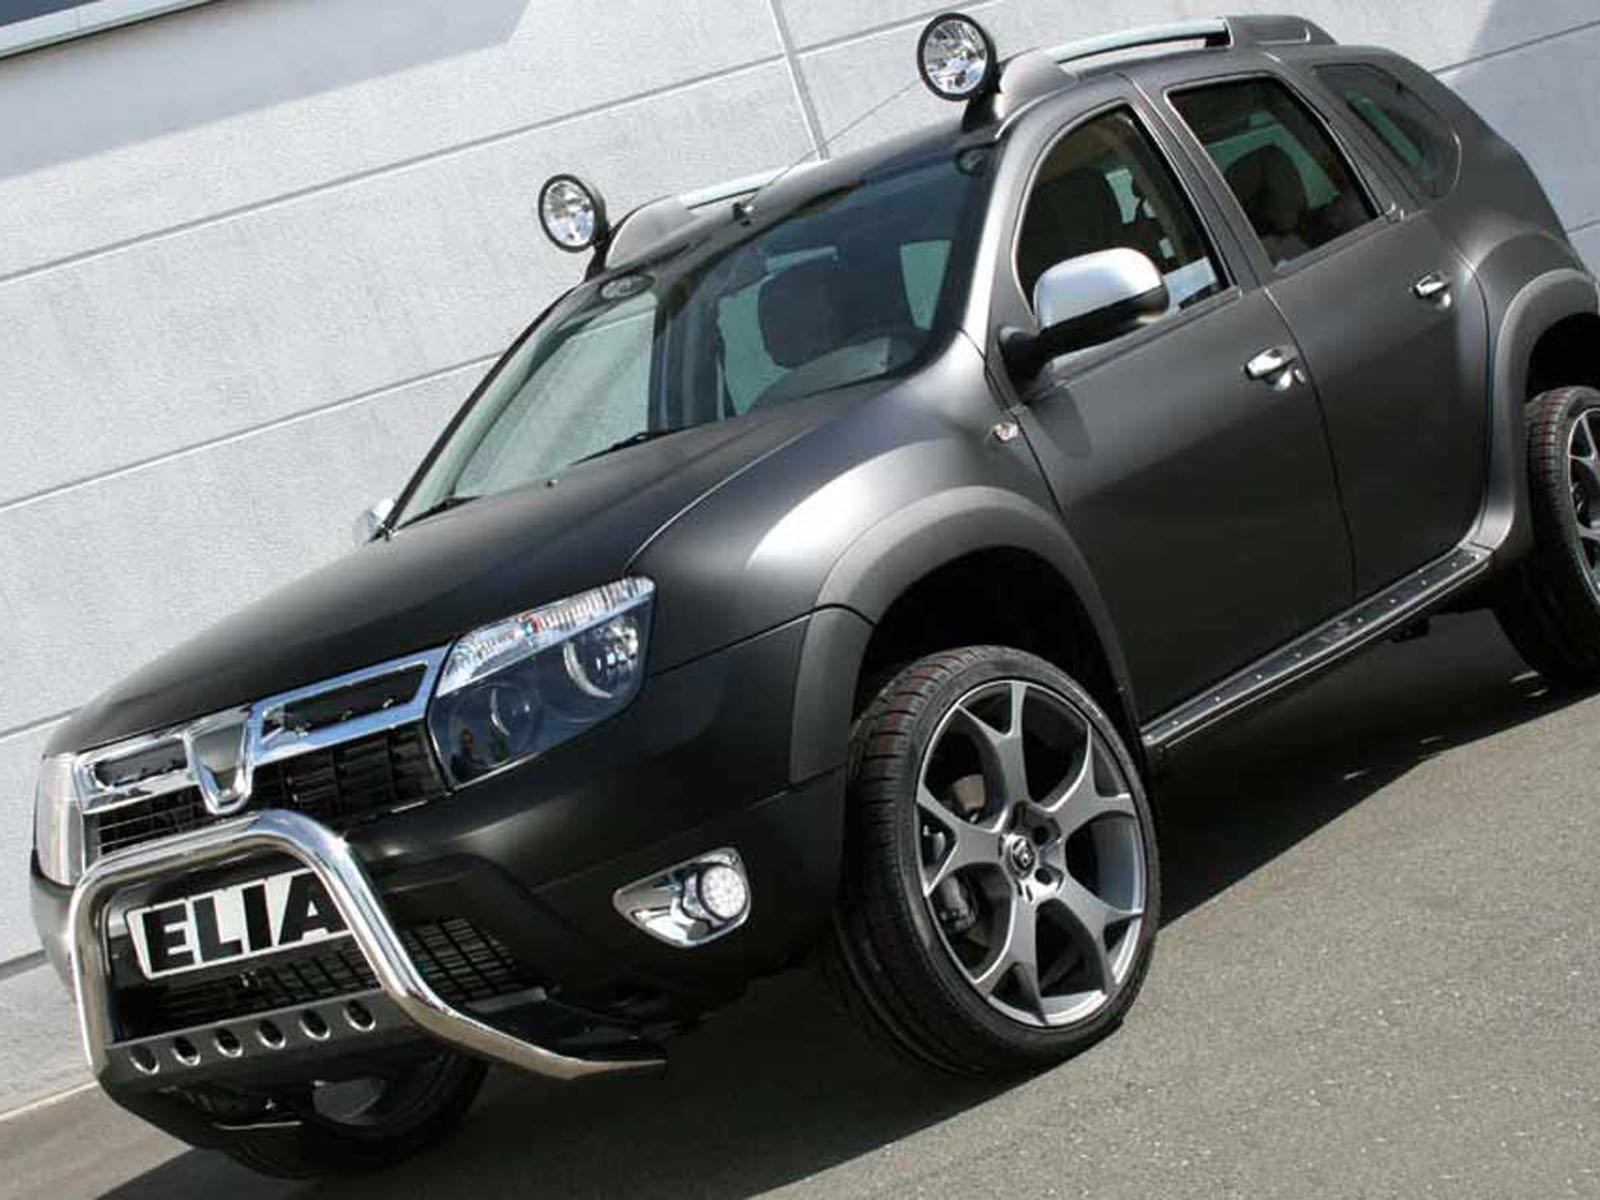 dacia duster tuning por elia. Black Bedroom Furniture Sets. Home Design Ideas